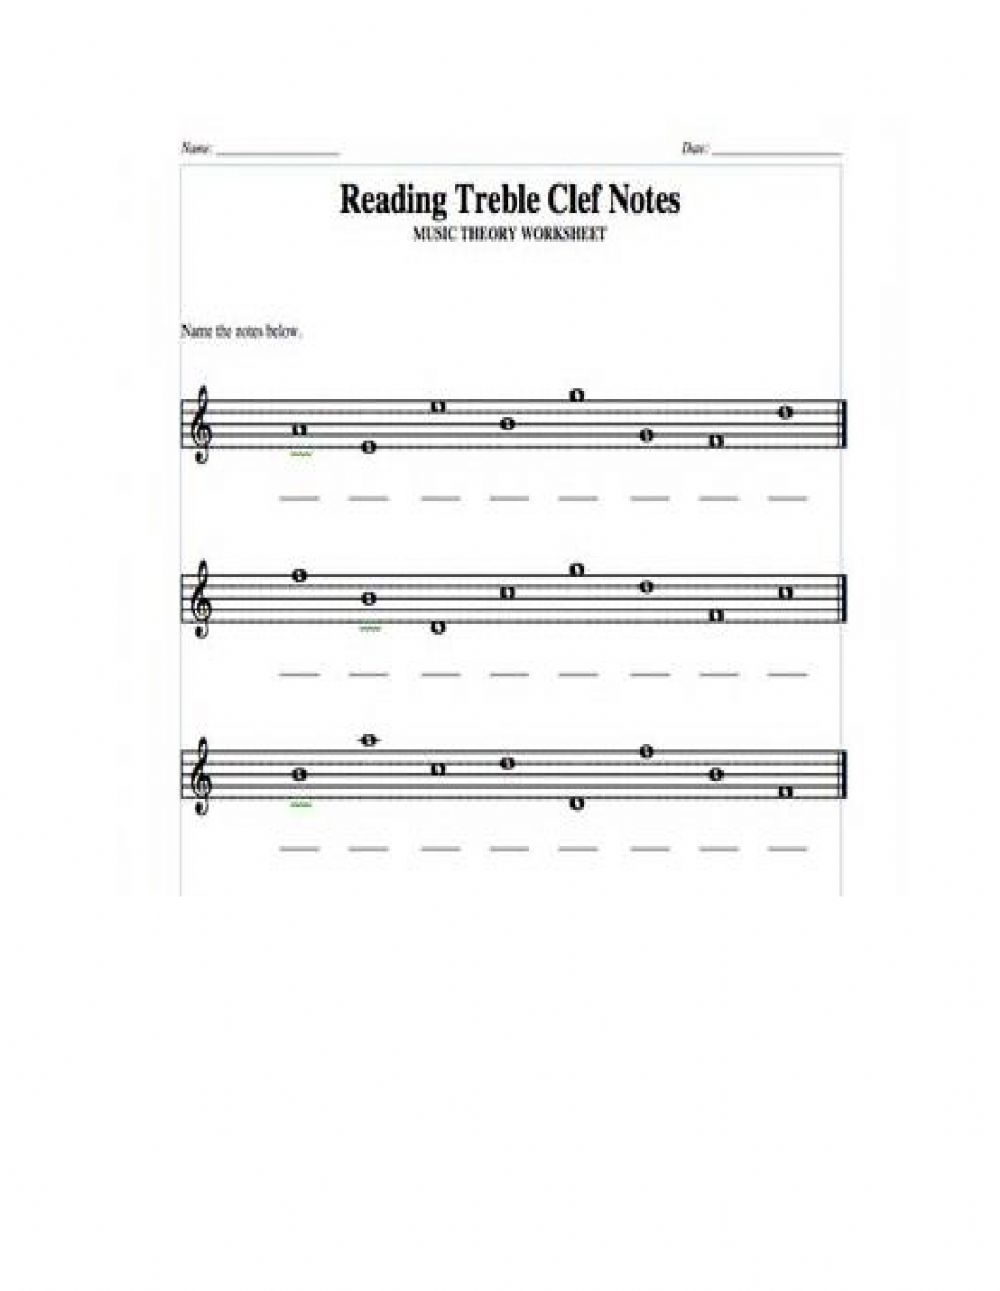 Treble Clef Line and space notes worksheet With Regard To Treble Clef Notes Worksheet